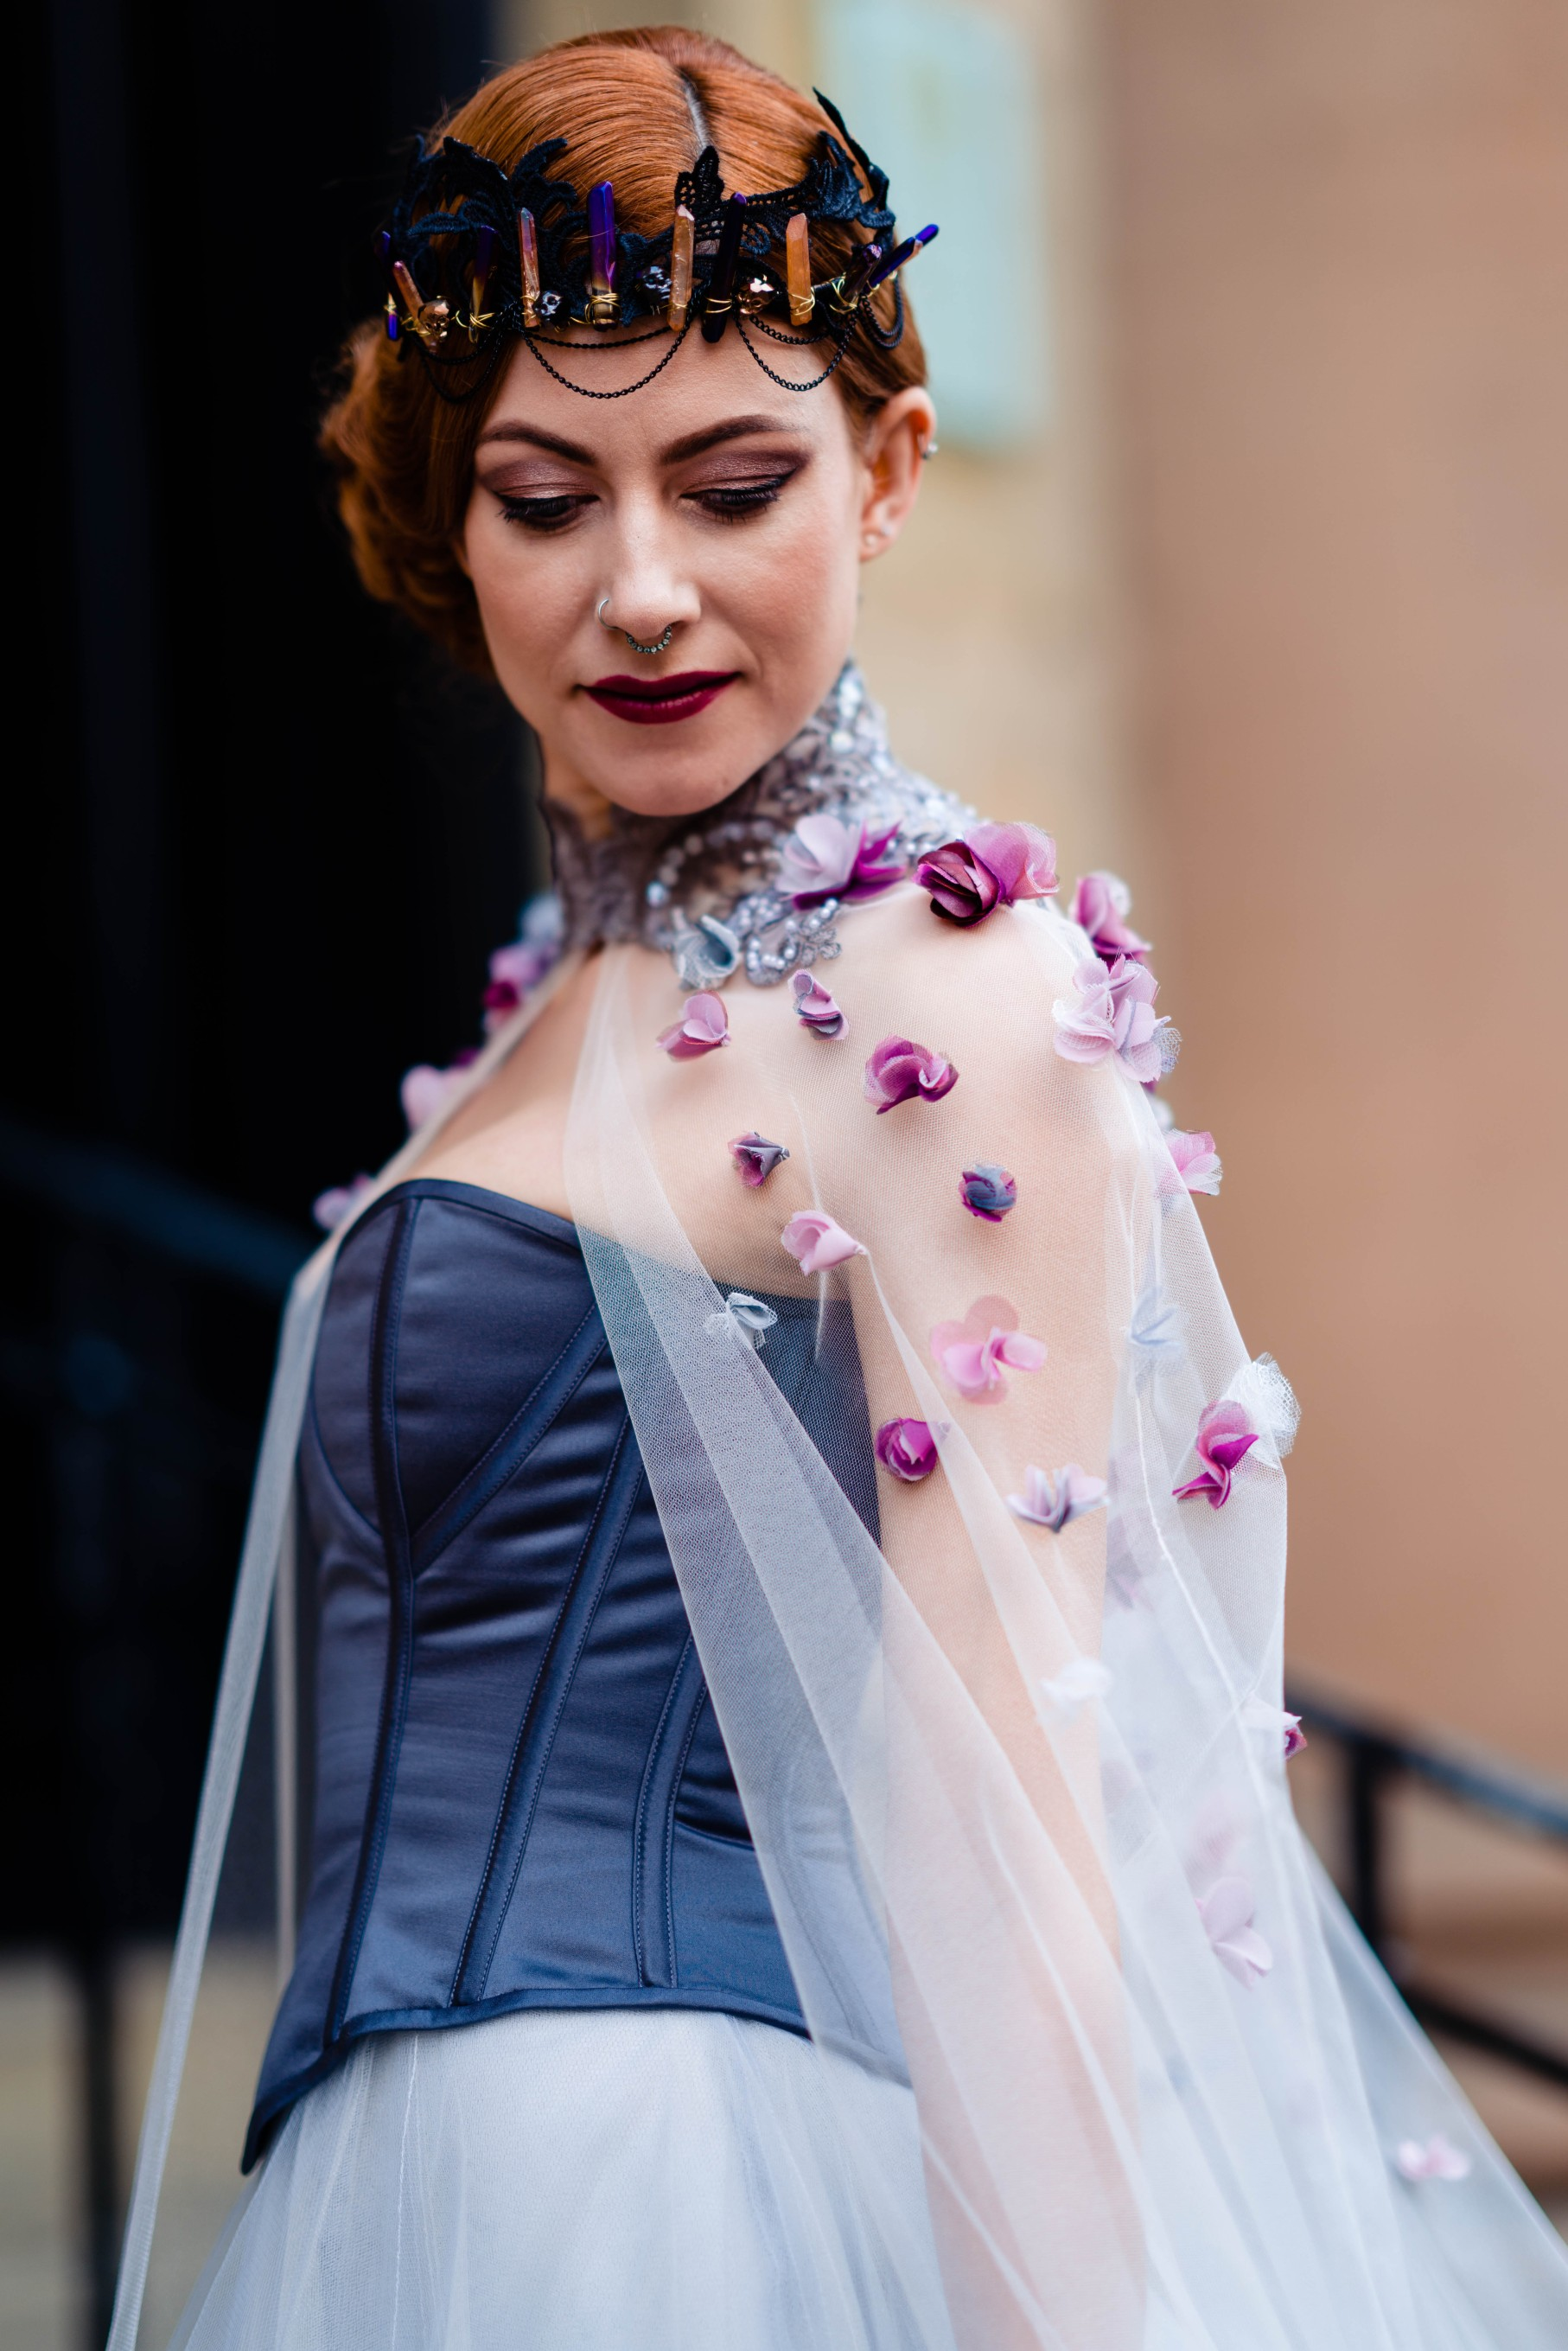 A gothic wedding - national justice museum wedding - alternative wedding - Vicki Clayson Photography (20)